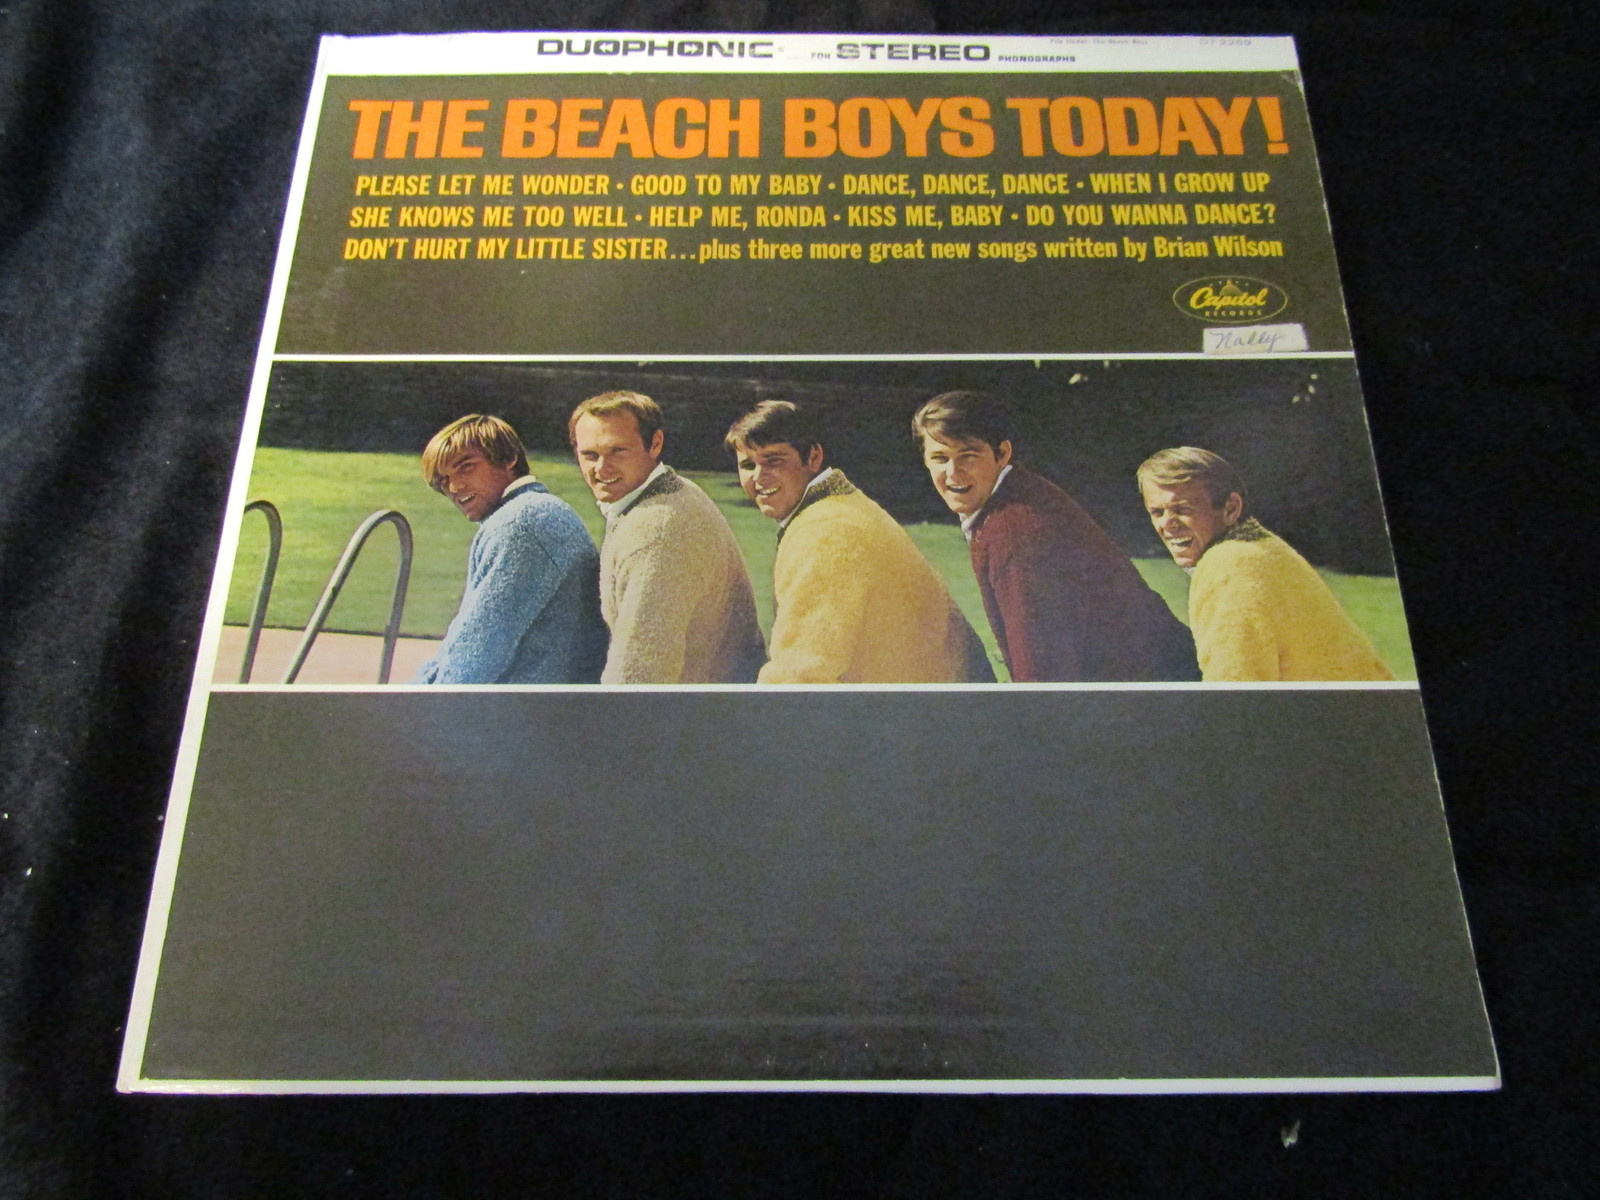 Primary image for The Beach Boys Today Capitol DT-2269 Duophonic Record Album LP W/ Original Inner